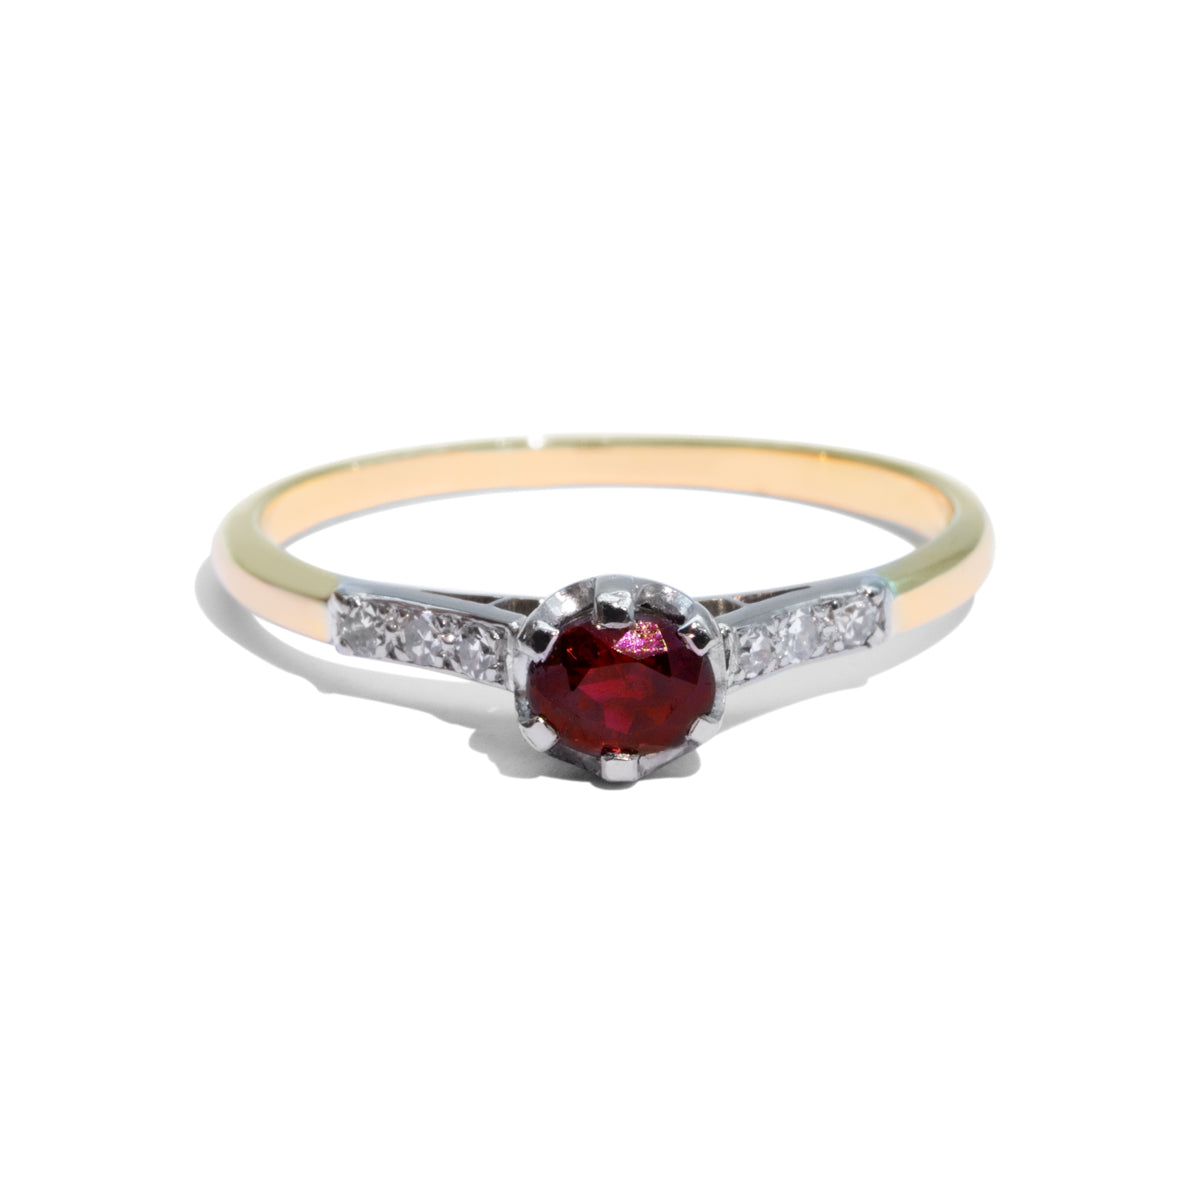 The Phoenix Vintage Ruby & Diamond Ring